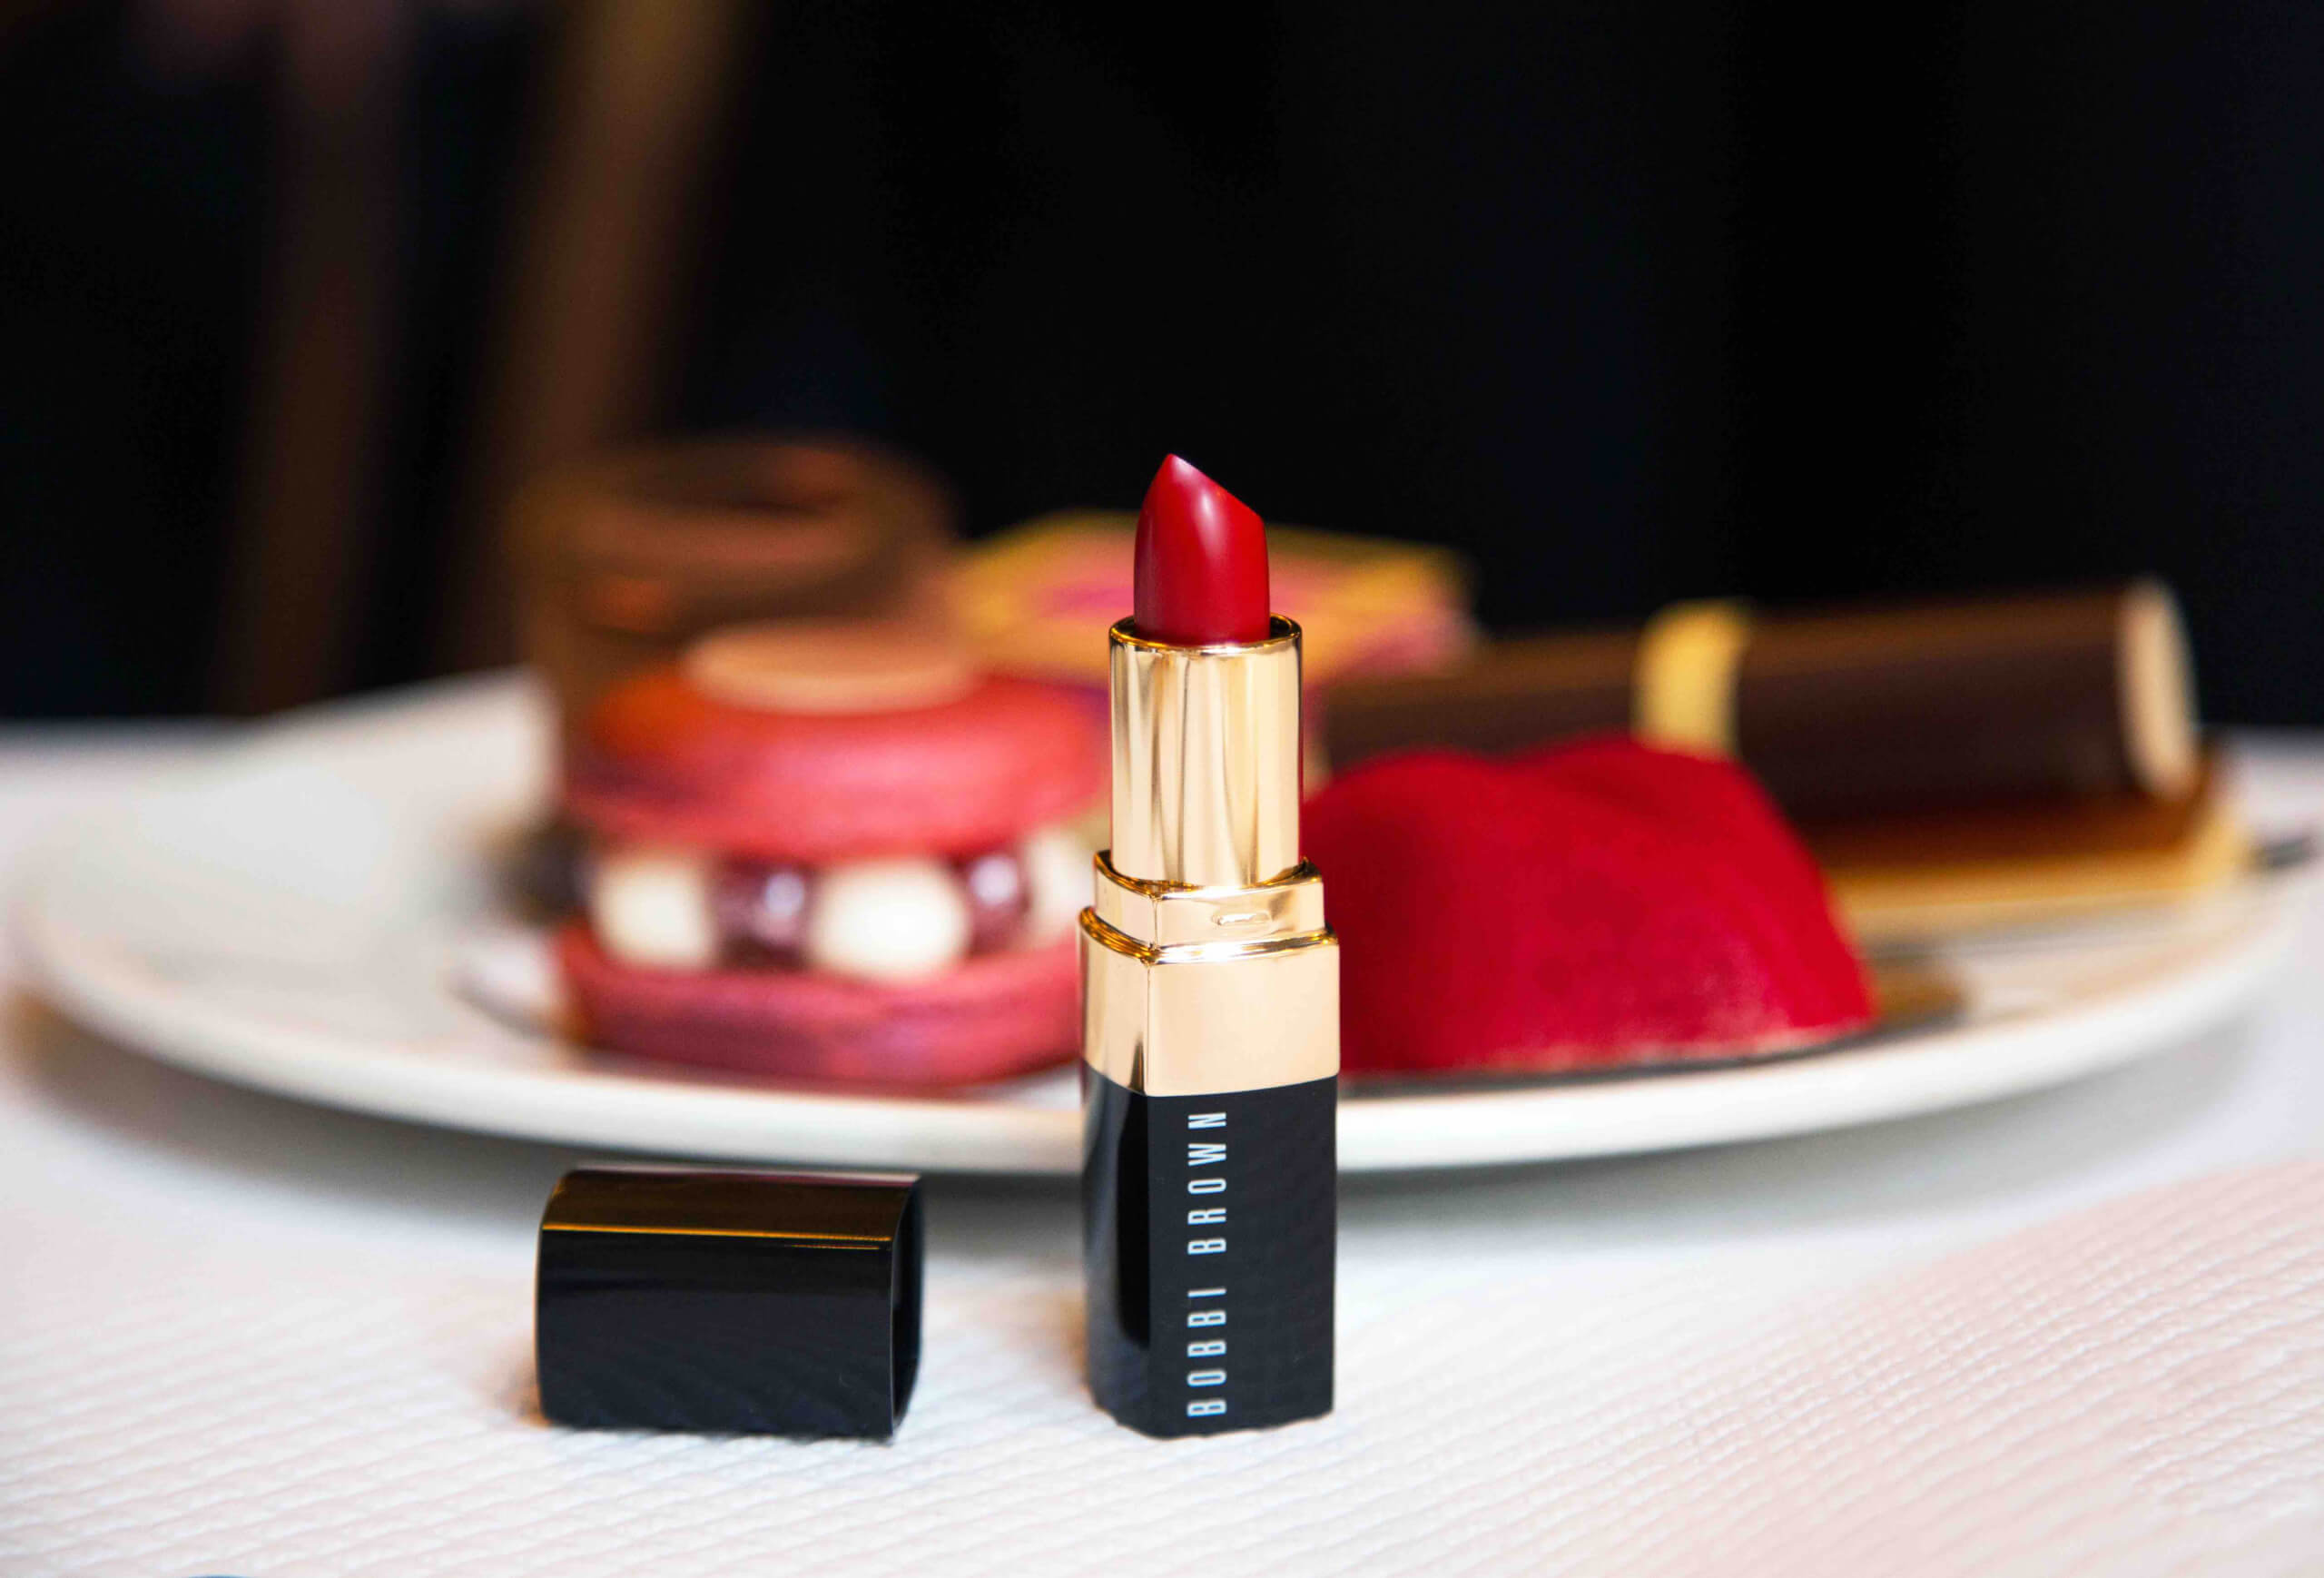 Bobbi Brown at Balthazar (2)